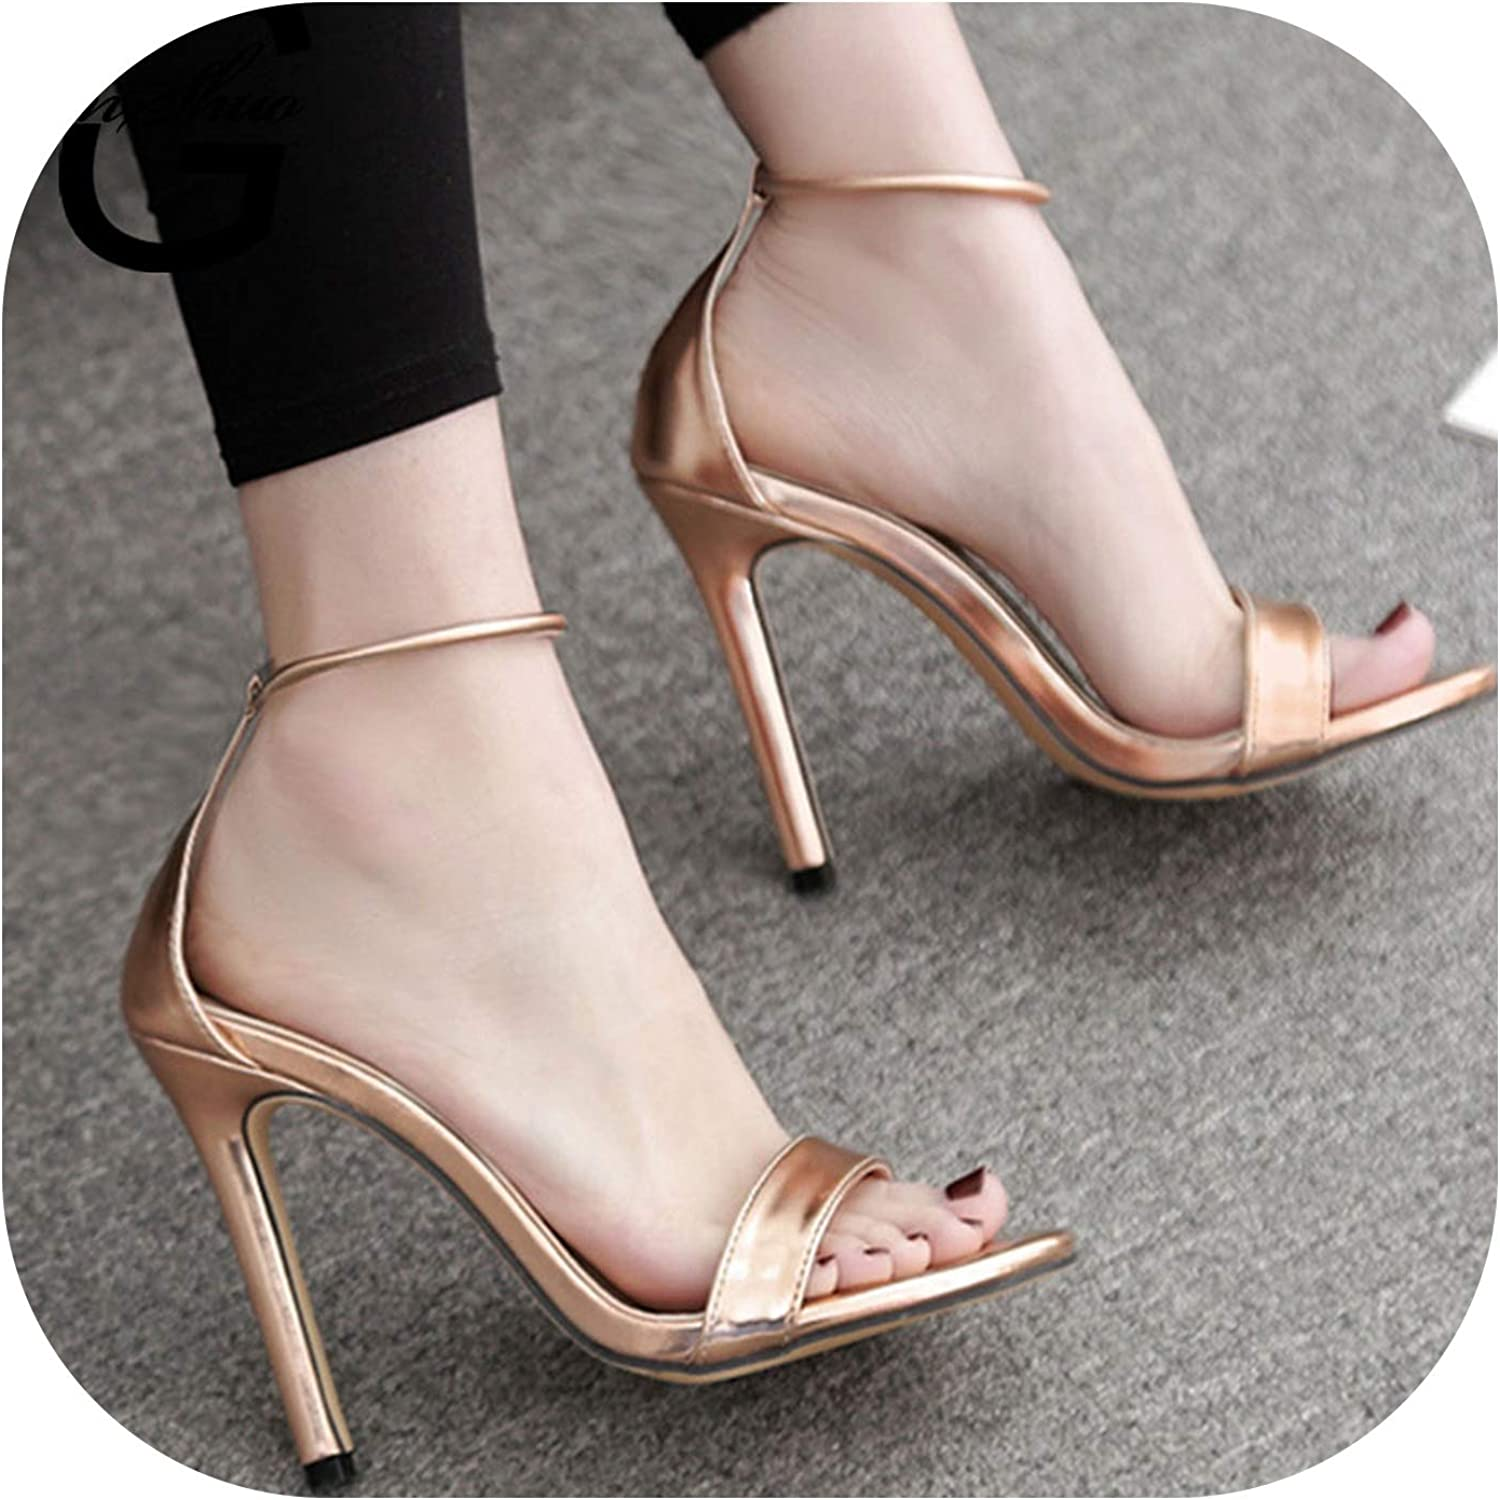 Alerghrg Open Toe Pumps Ladies shoes Thin High Heels Ankle Strap Footwear shoes